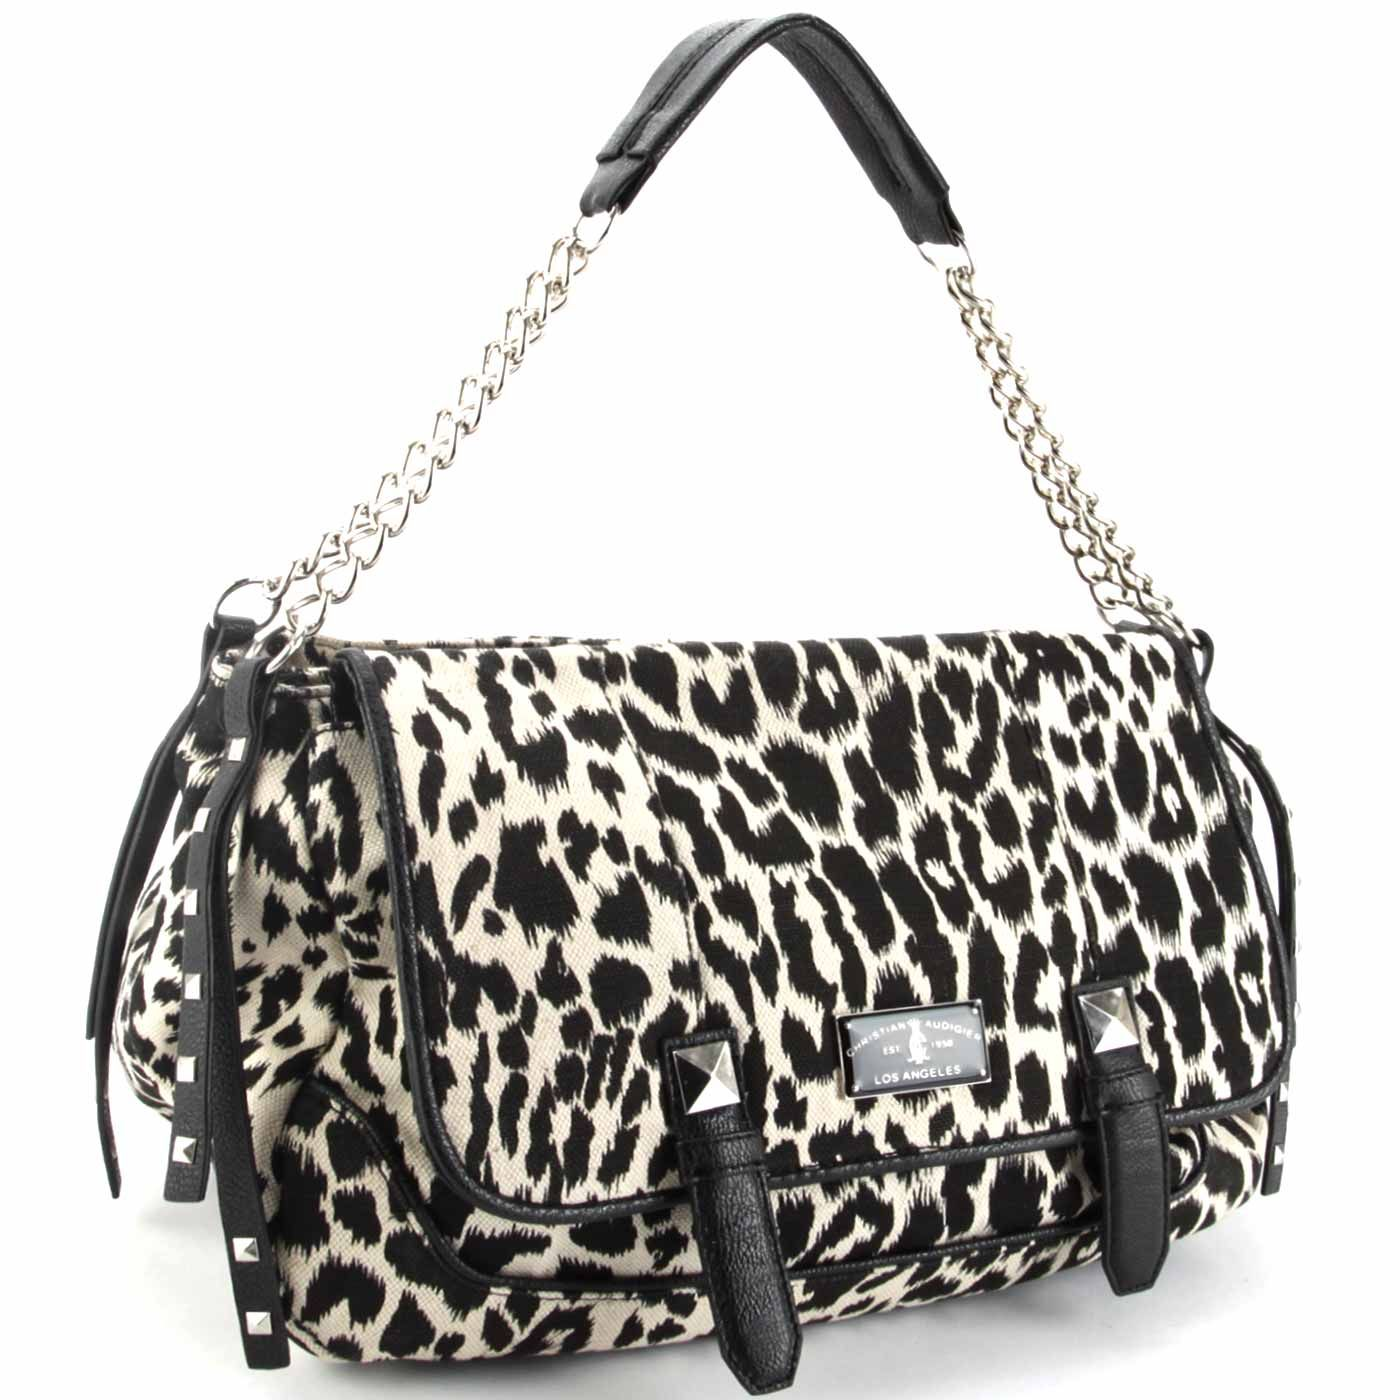 573ffa019f20 Christian Audigier Marge Hobo Bag -Leopard